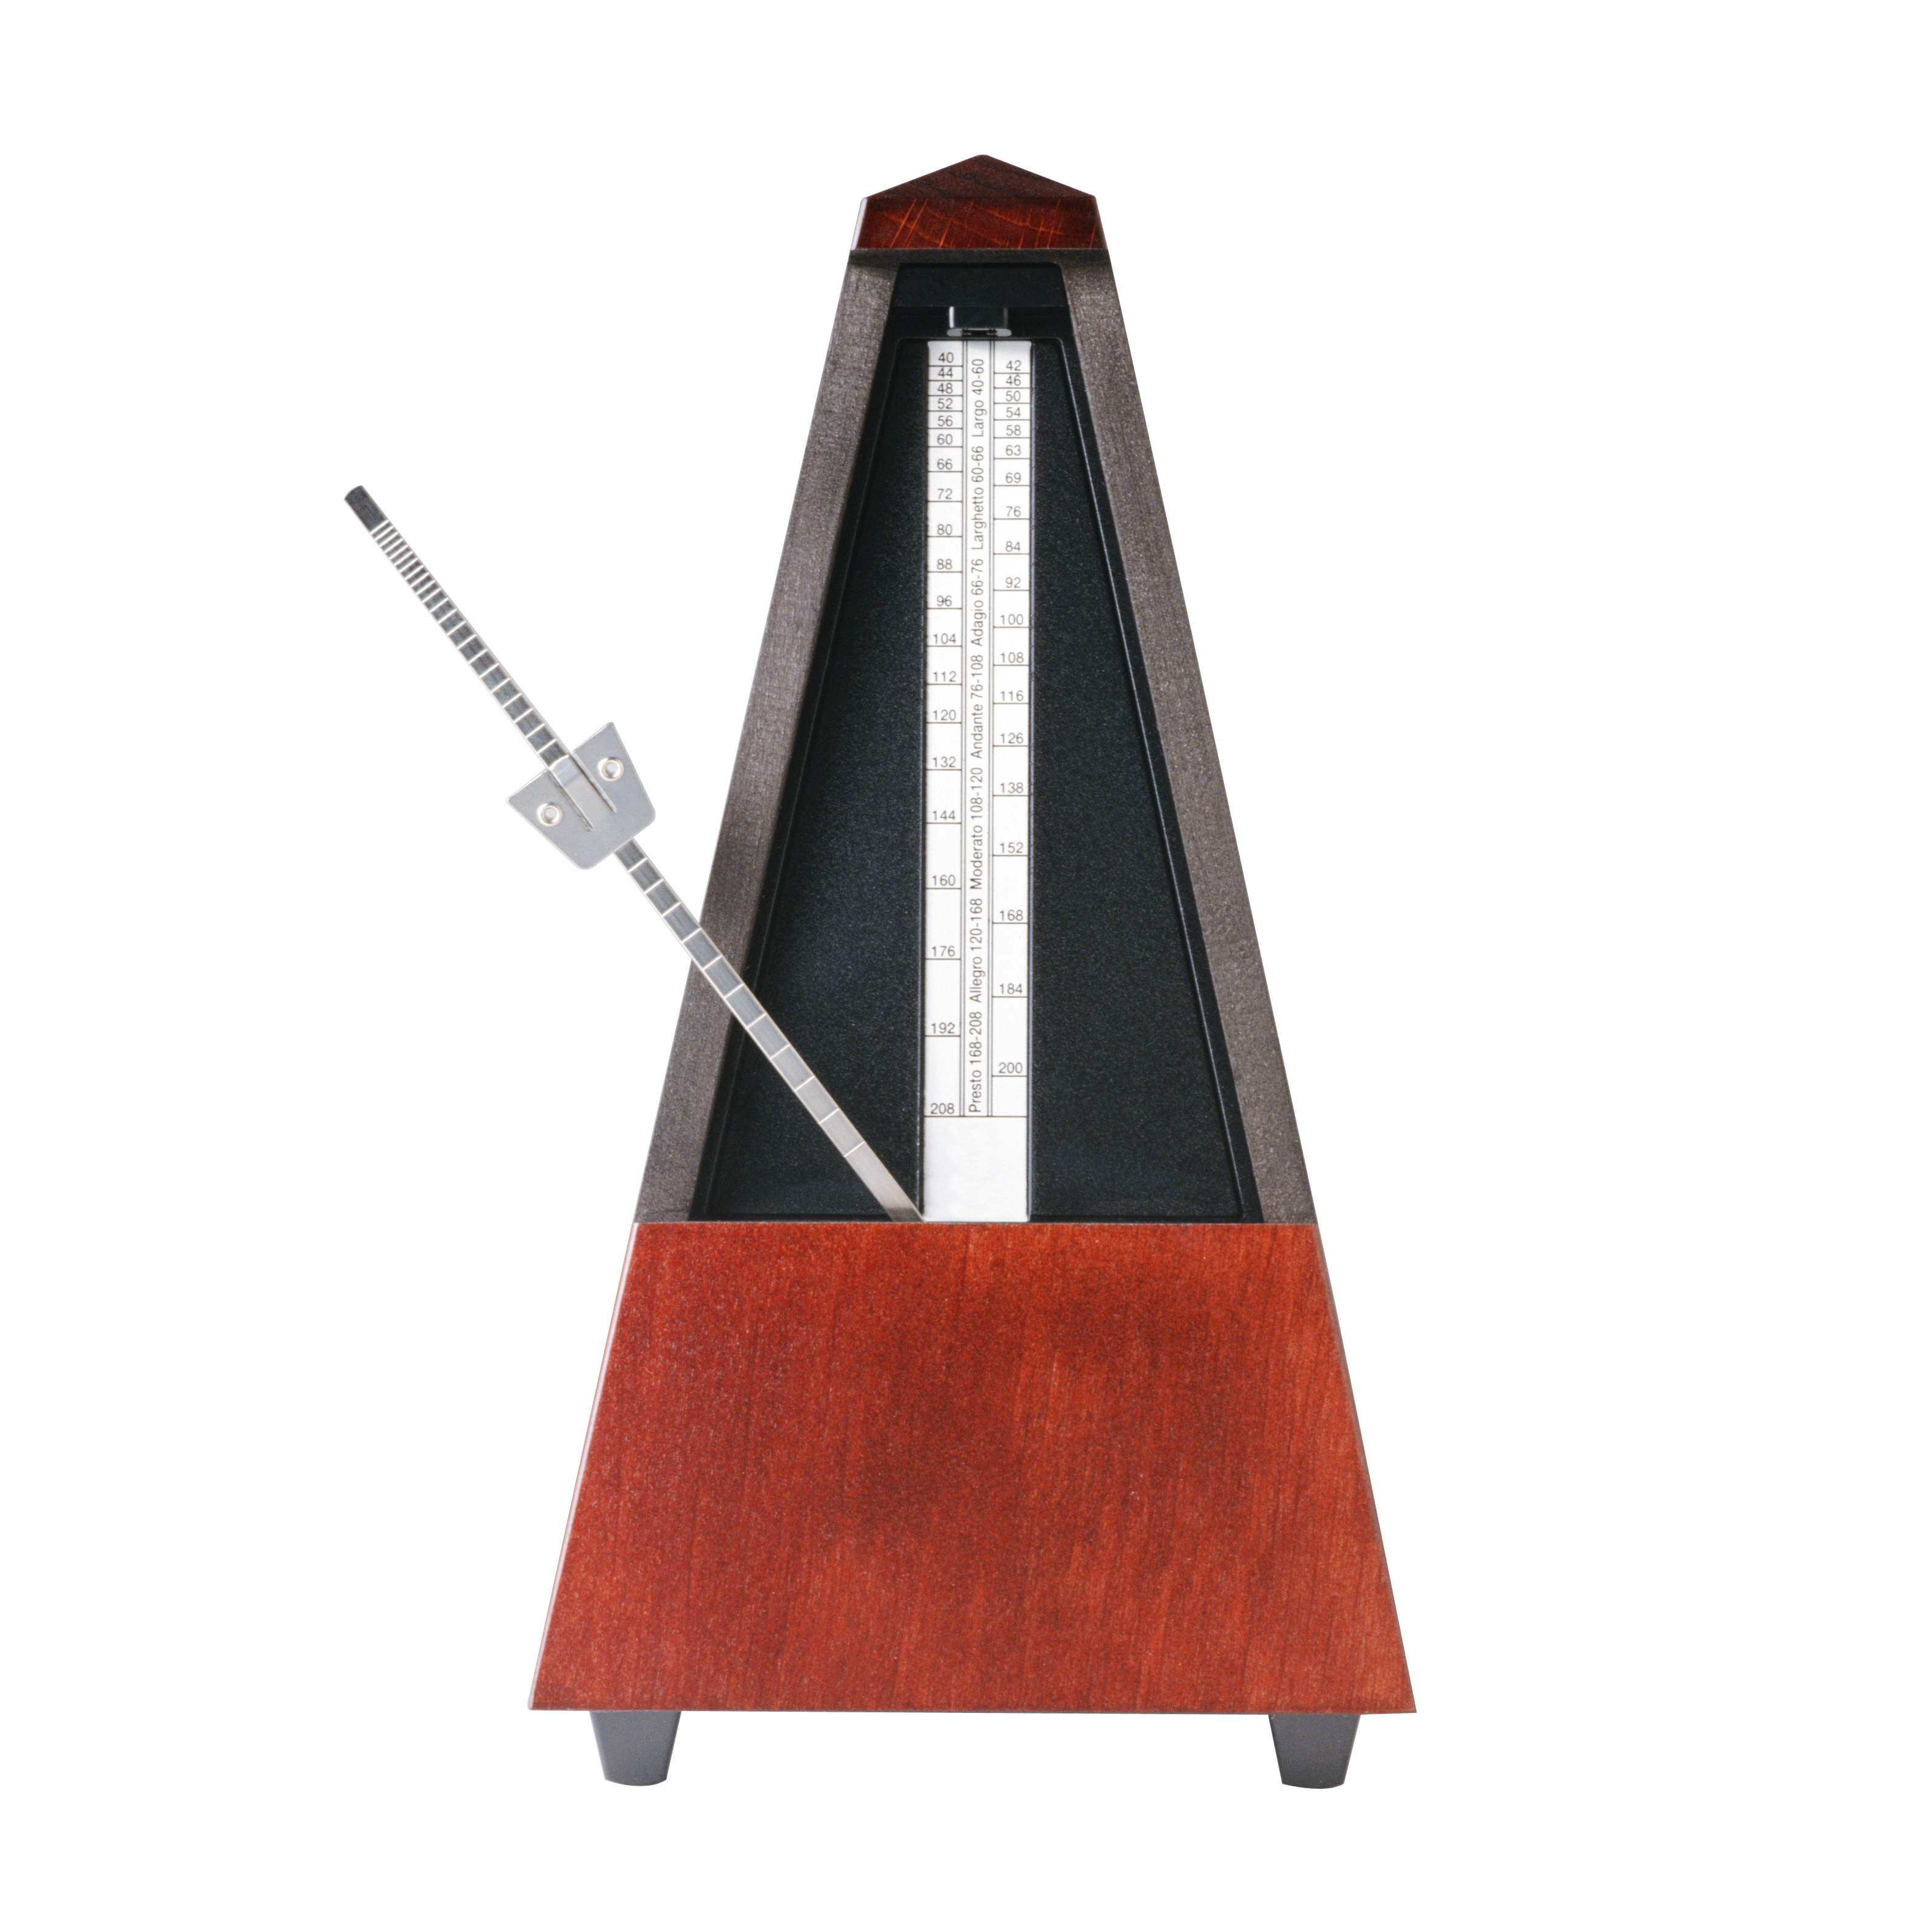 The Key to Practice with a Metronome